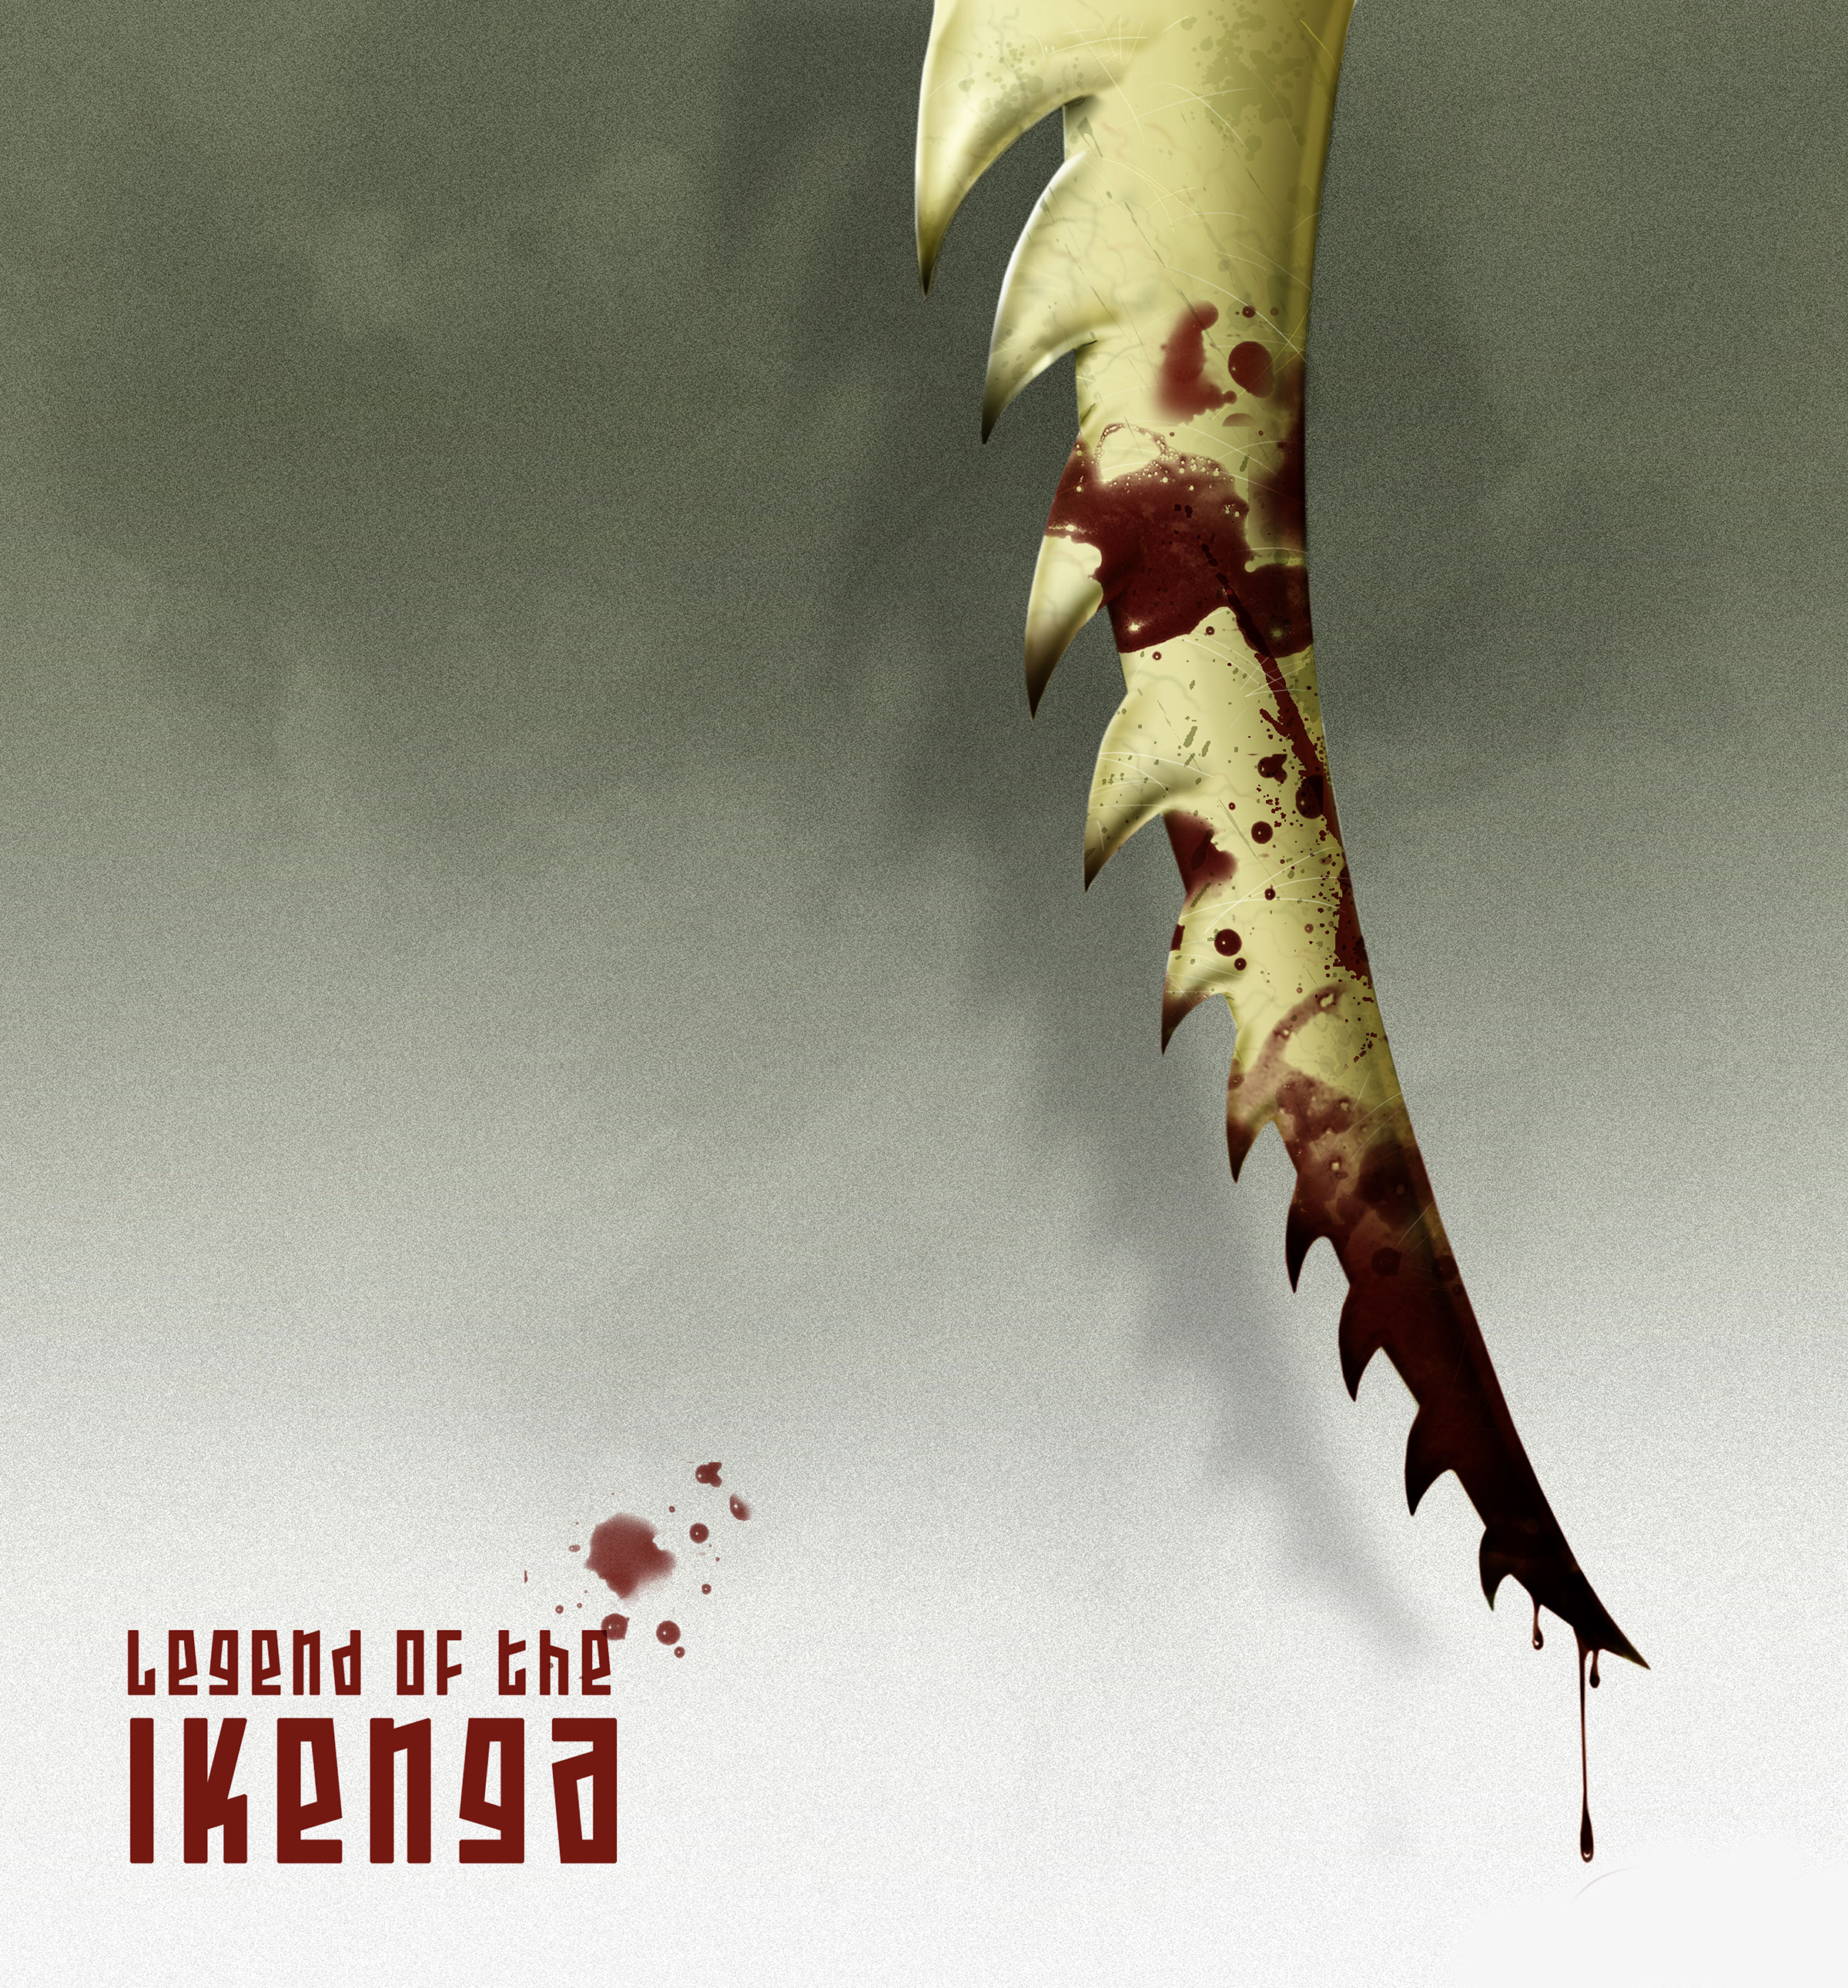 ikenga graphic novel cover art 2